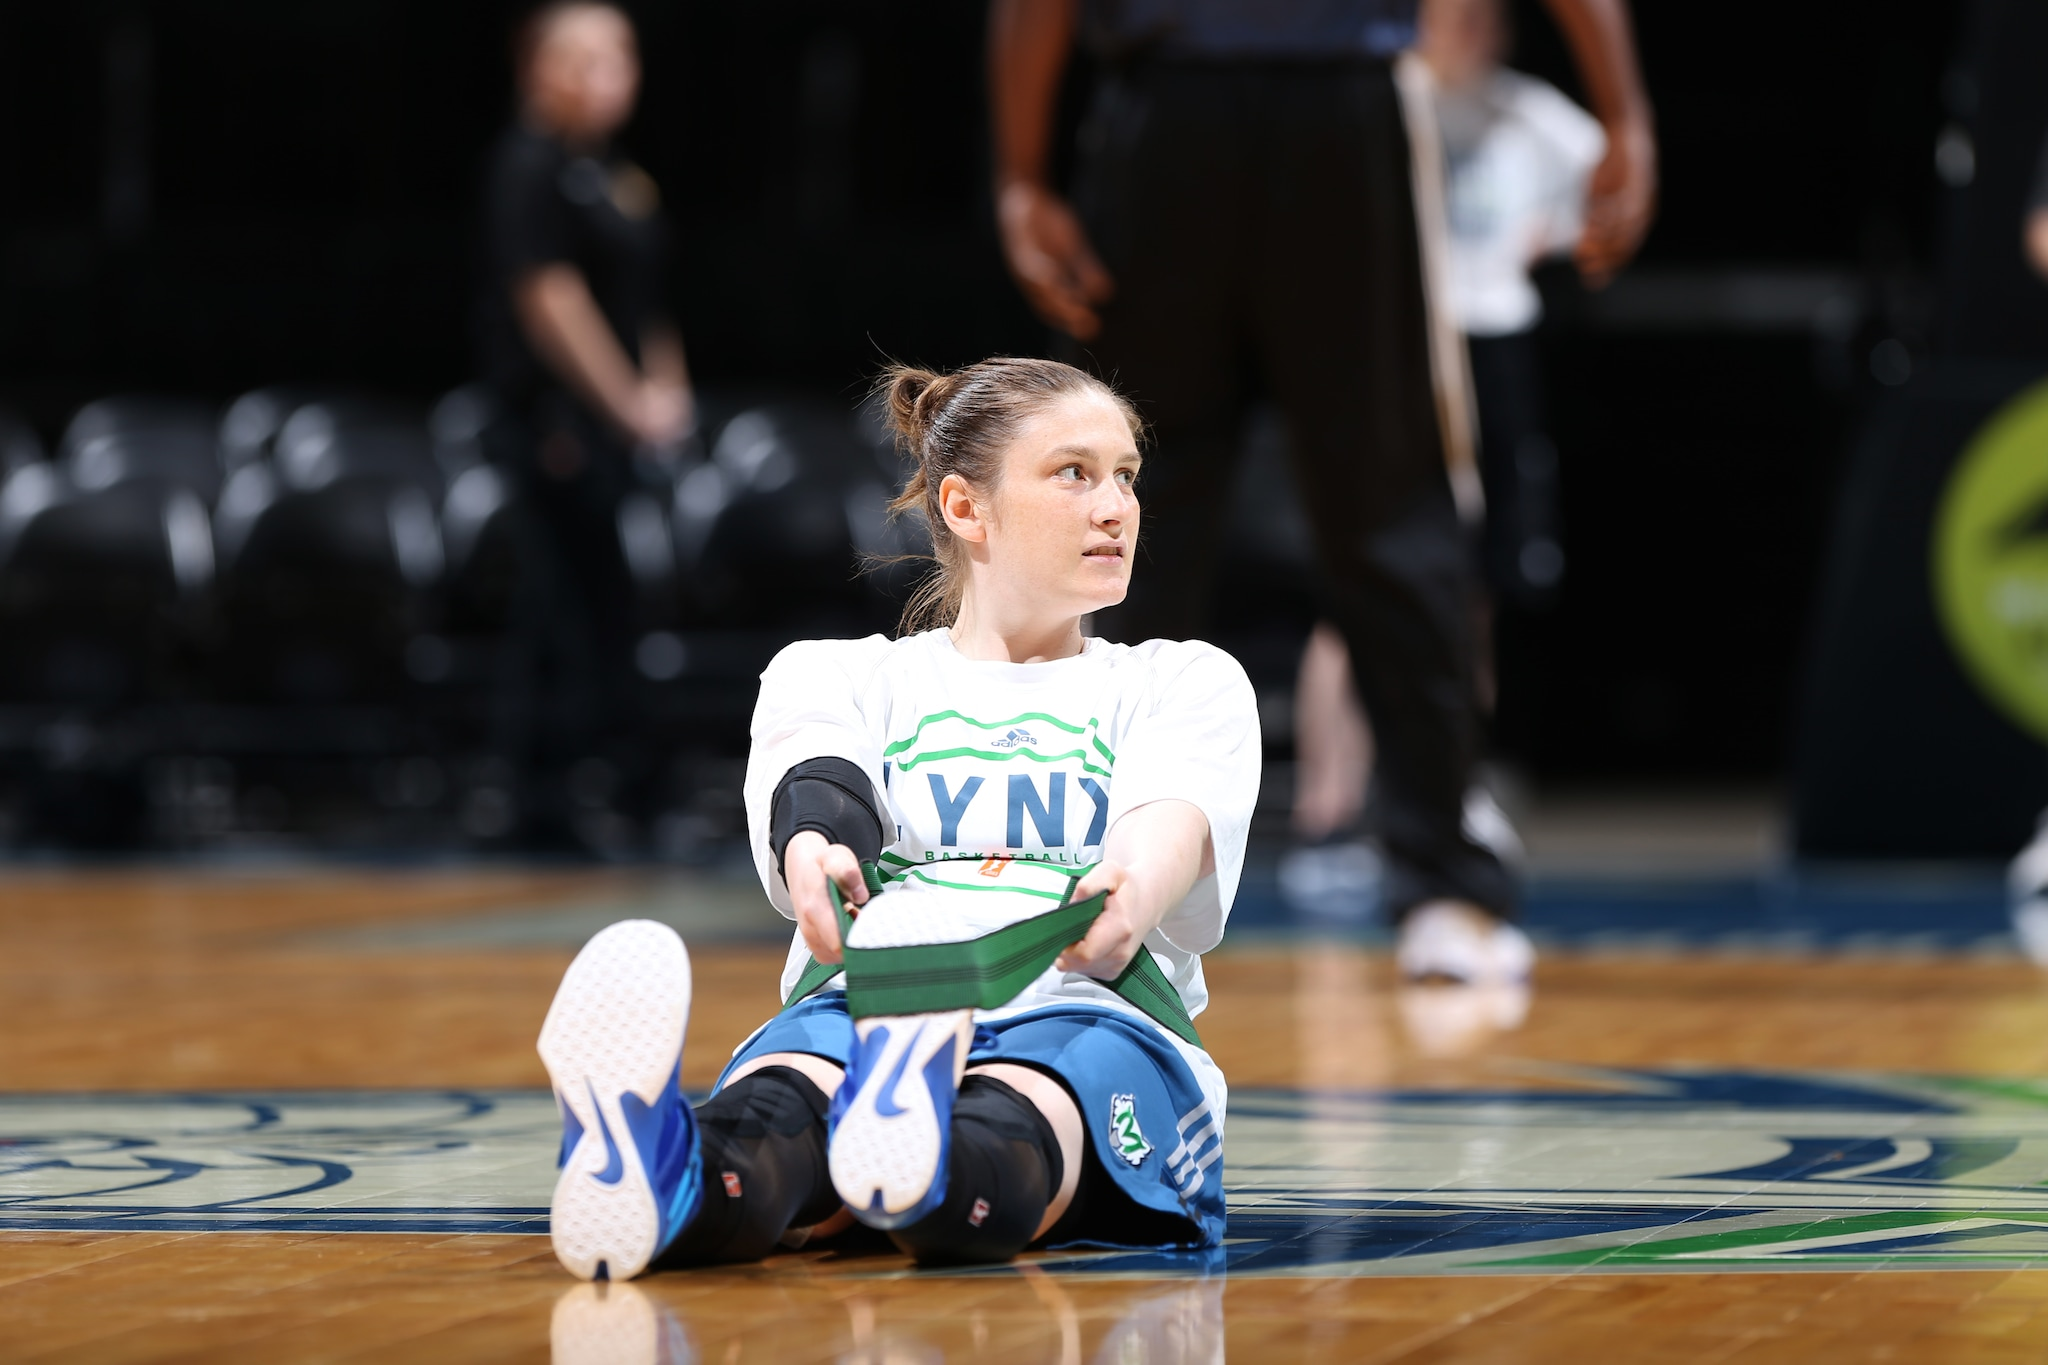 MINNEAPOLIS, MN - JUNE 1:  Lindsay Whalen #13 of the Minnesota Lynx warms up before the game against the New York Liberty on June 1, 2015 at Target Center in Minneapolis, Minnesota. NOTE TO USER: User expressly acknowledges and agrees that, by downloading and or using this Photograph, user is consenting to the terms and conditions of the Getty Images License Agreement. Mandatory Copyright Notice: Copyright 2015 NBAE (Photo by David Sherman/NBAE via Getty Images)